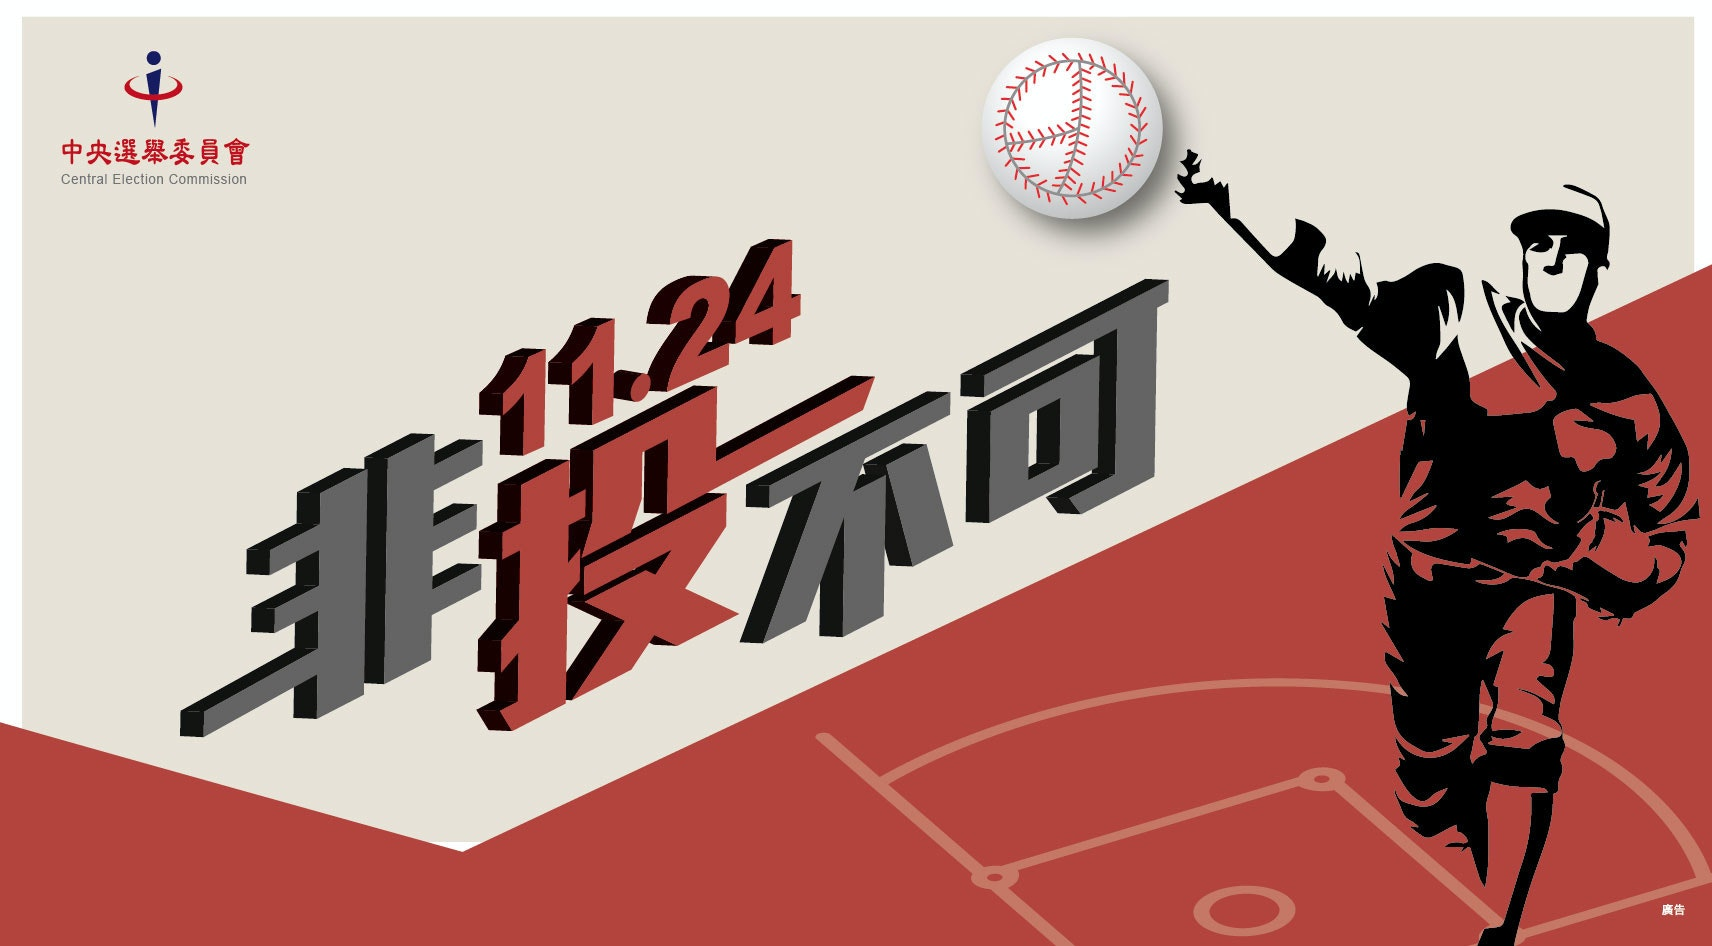 Baseball, Pitcher, Outfielder, Illustration, Vector graphics, Pitch, Ball, Stock photography, Cricketer, Baseball, nadhazovač baseball, text, graphic design, font, product, logo, advertising, poster, illustration, brand, graphics